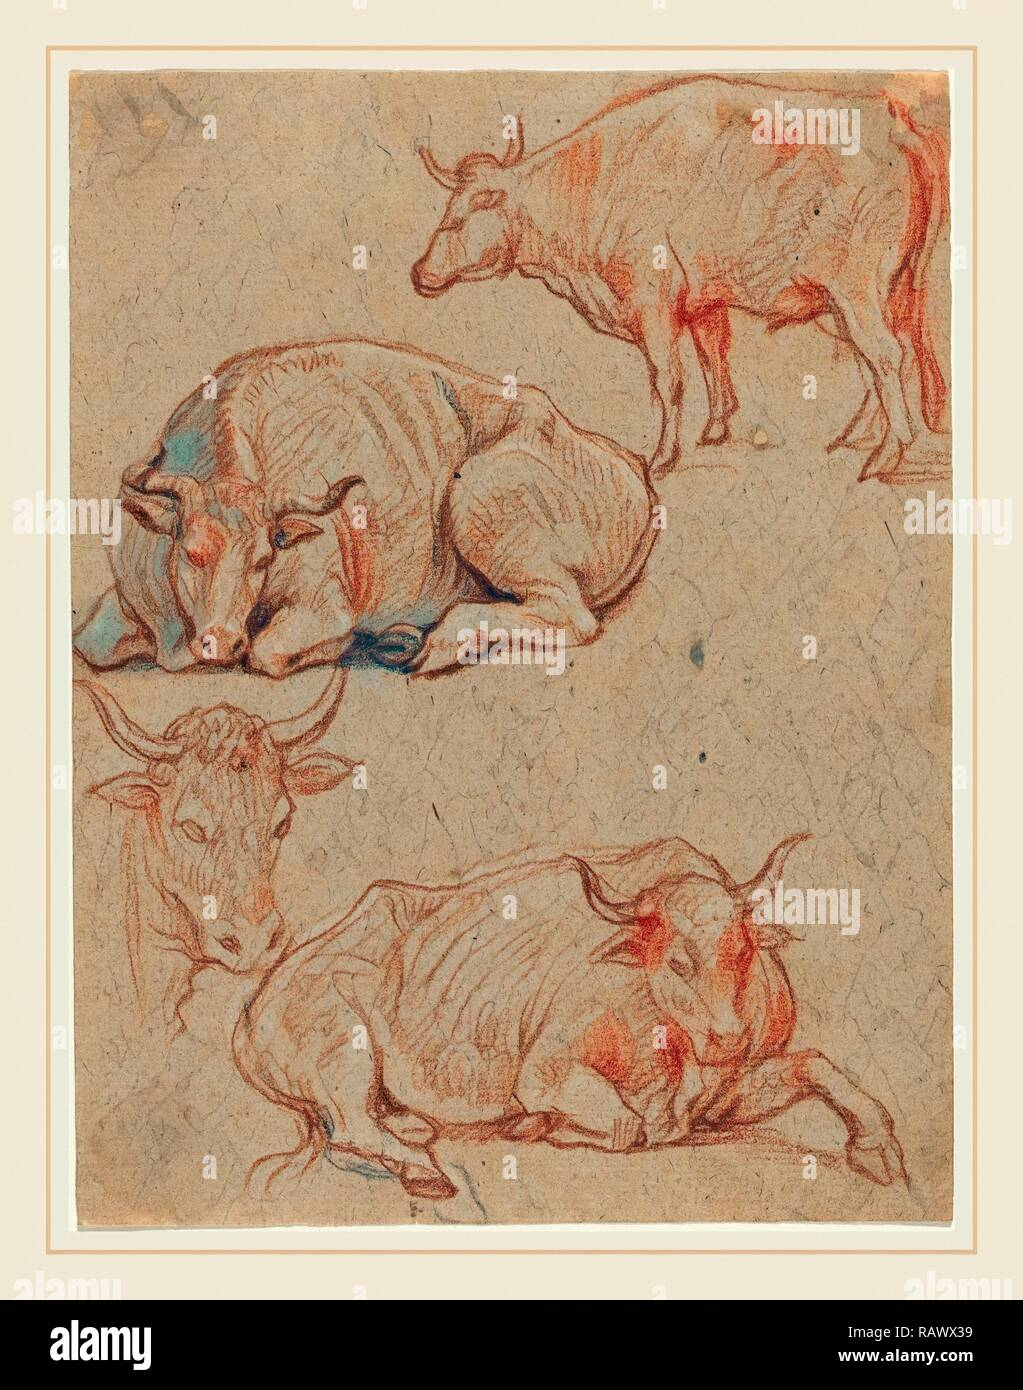 Claude Lorrain, French (1604-1605-1682), Four Cows, red and black chalks with gray wash on laid paper. Reimagined - Stock Image